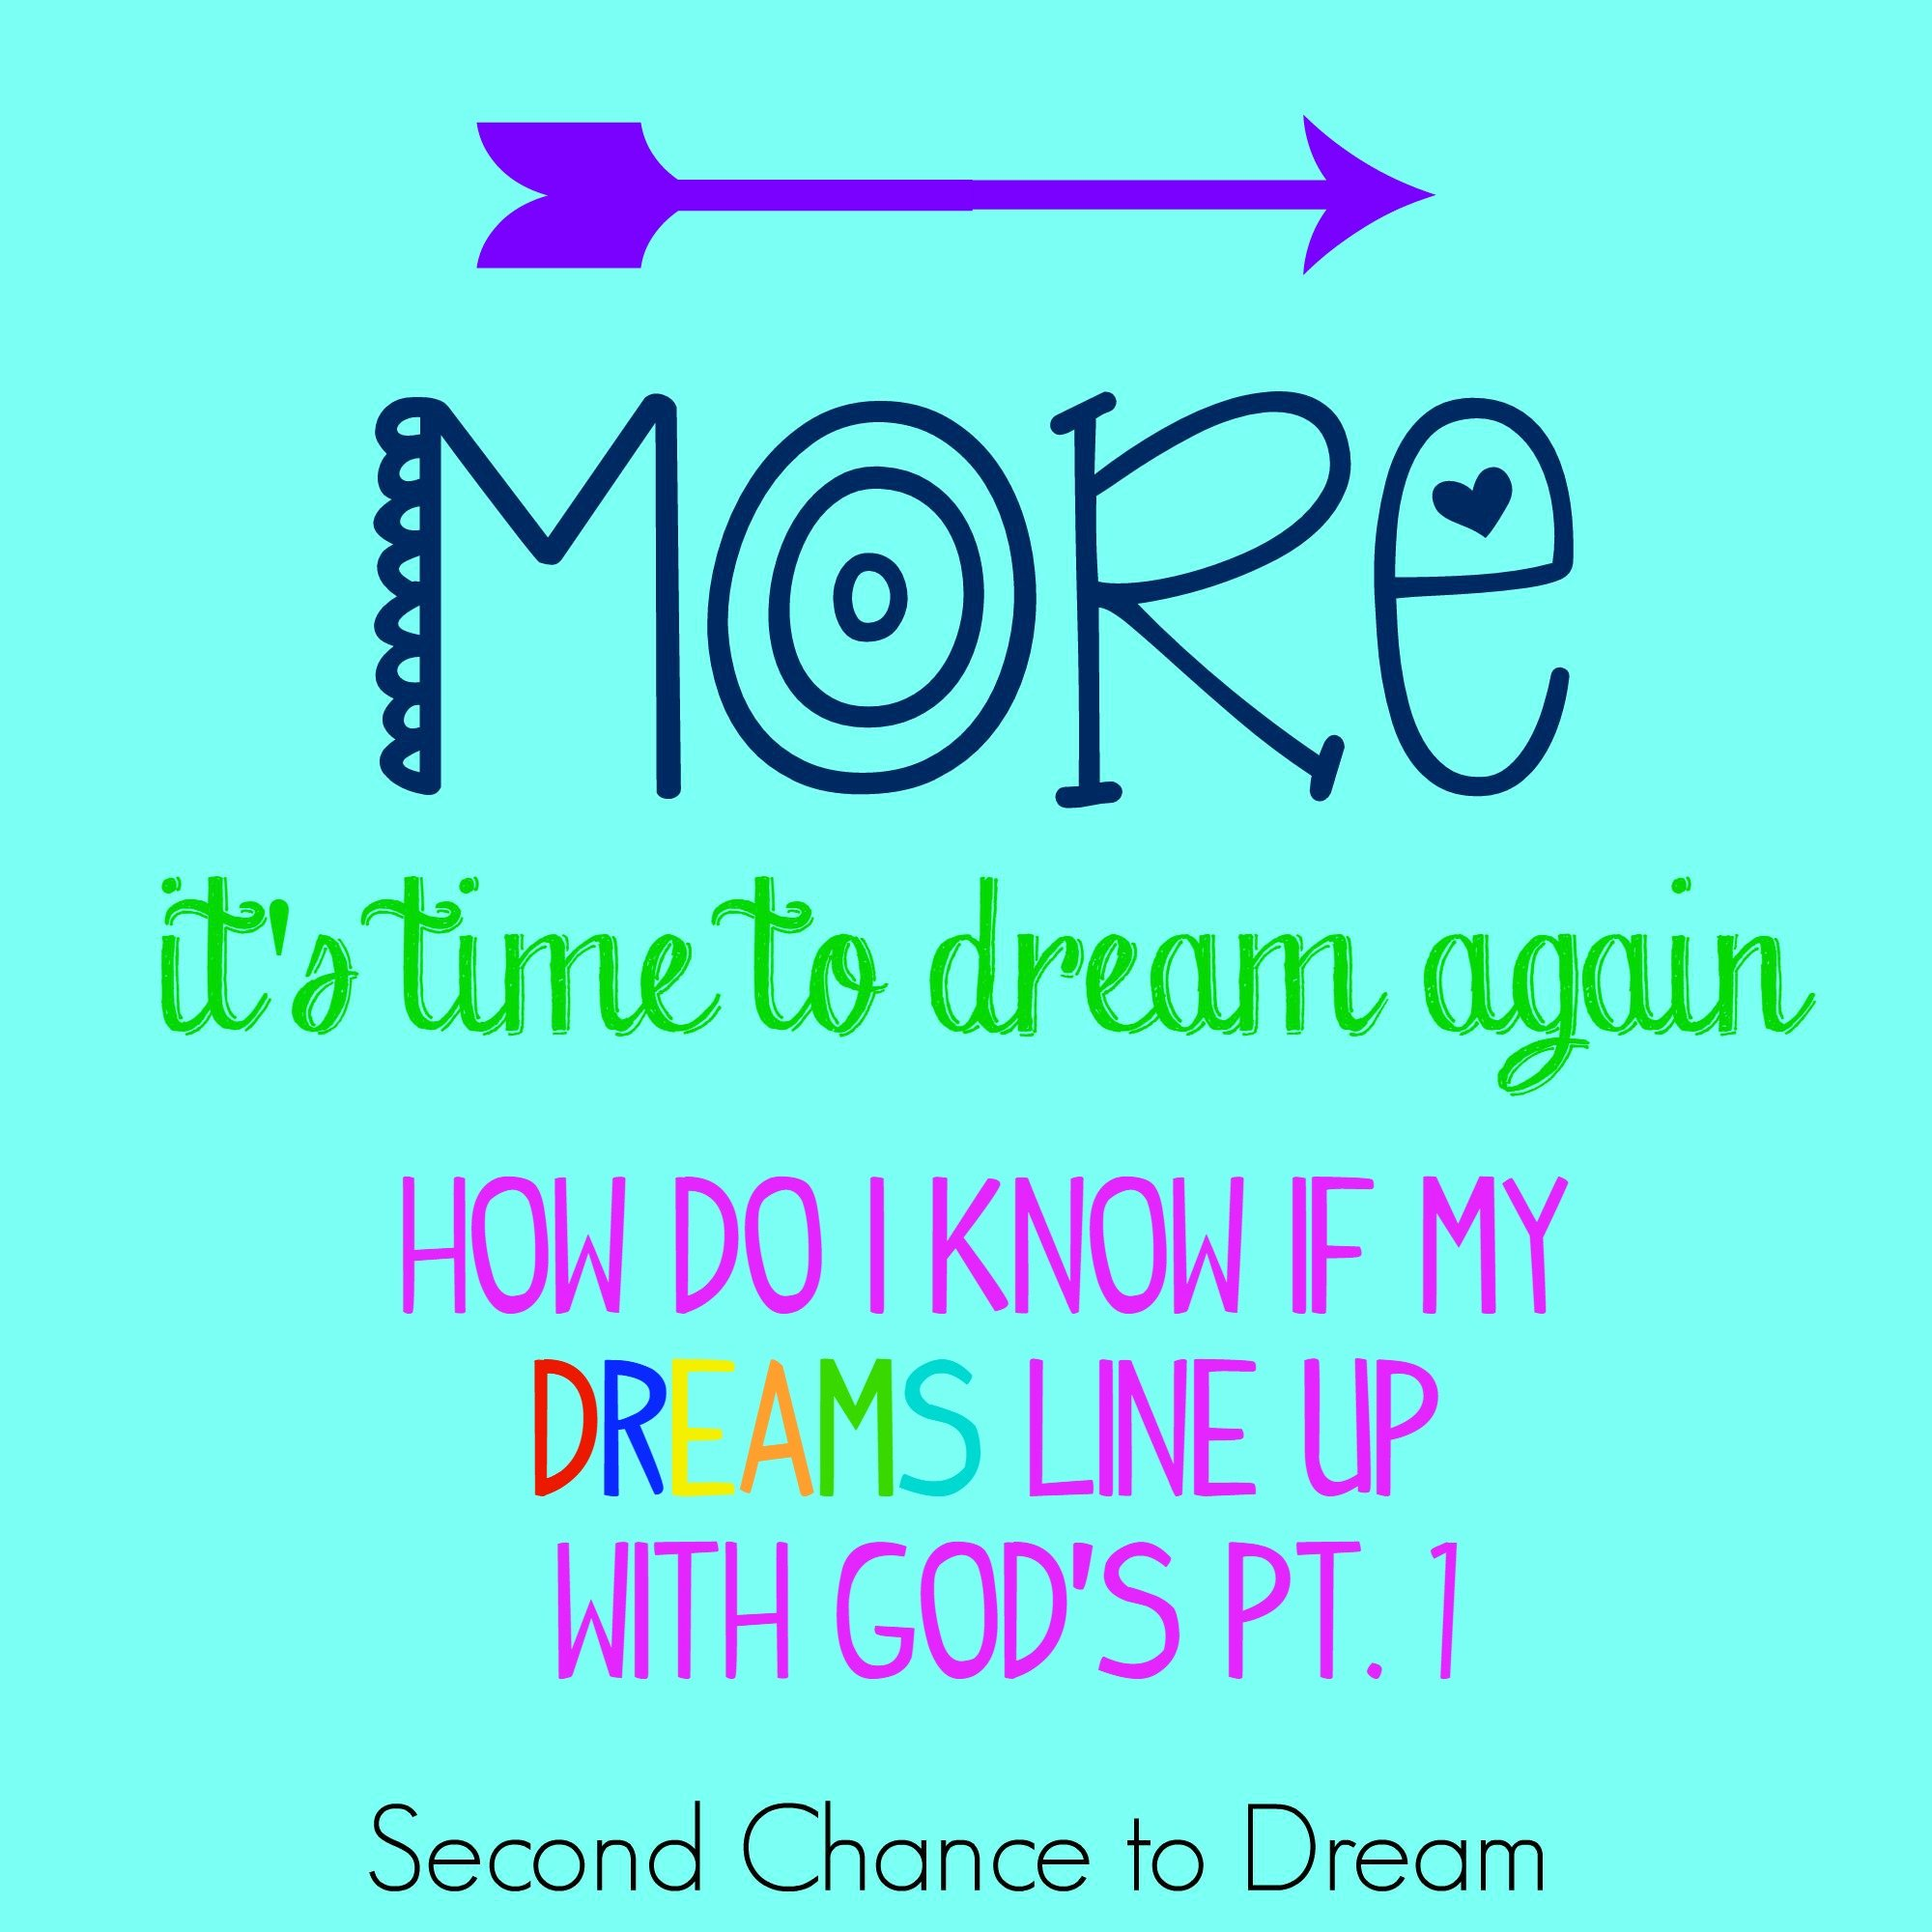 Second Chance to Dream: How do I know if my dreams line up with God Pt 1